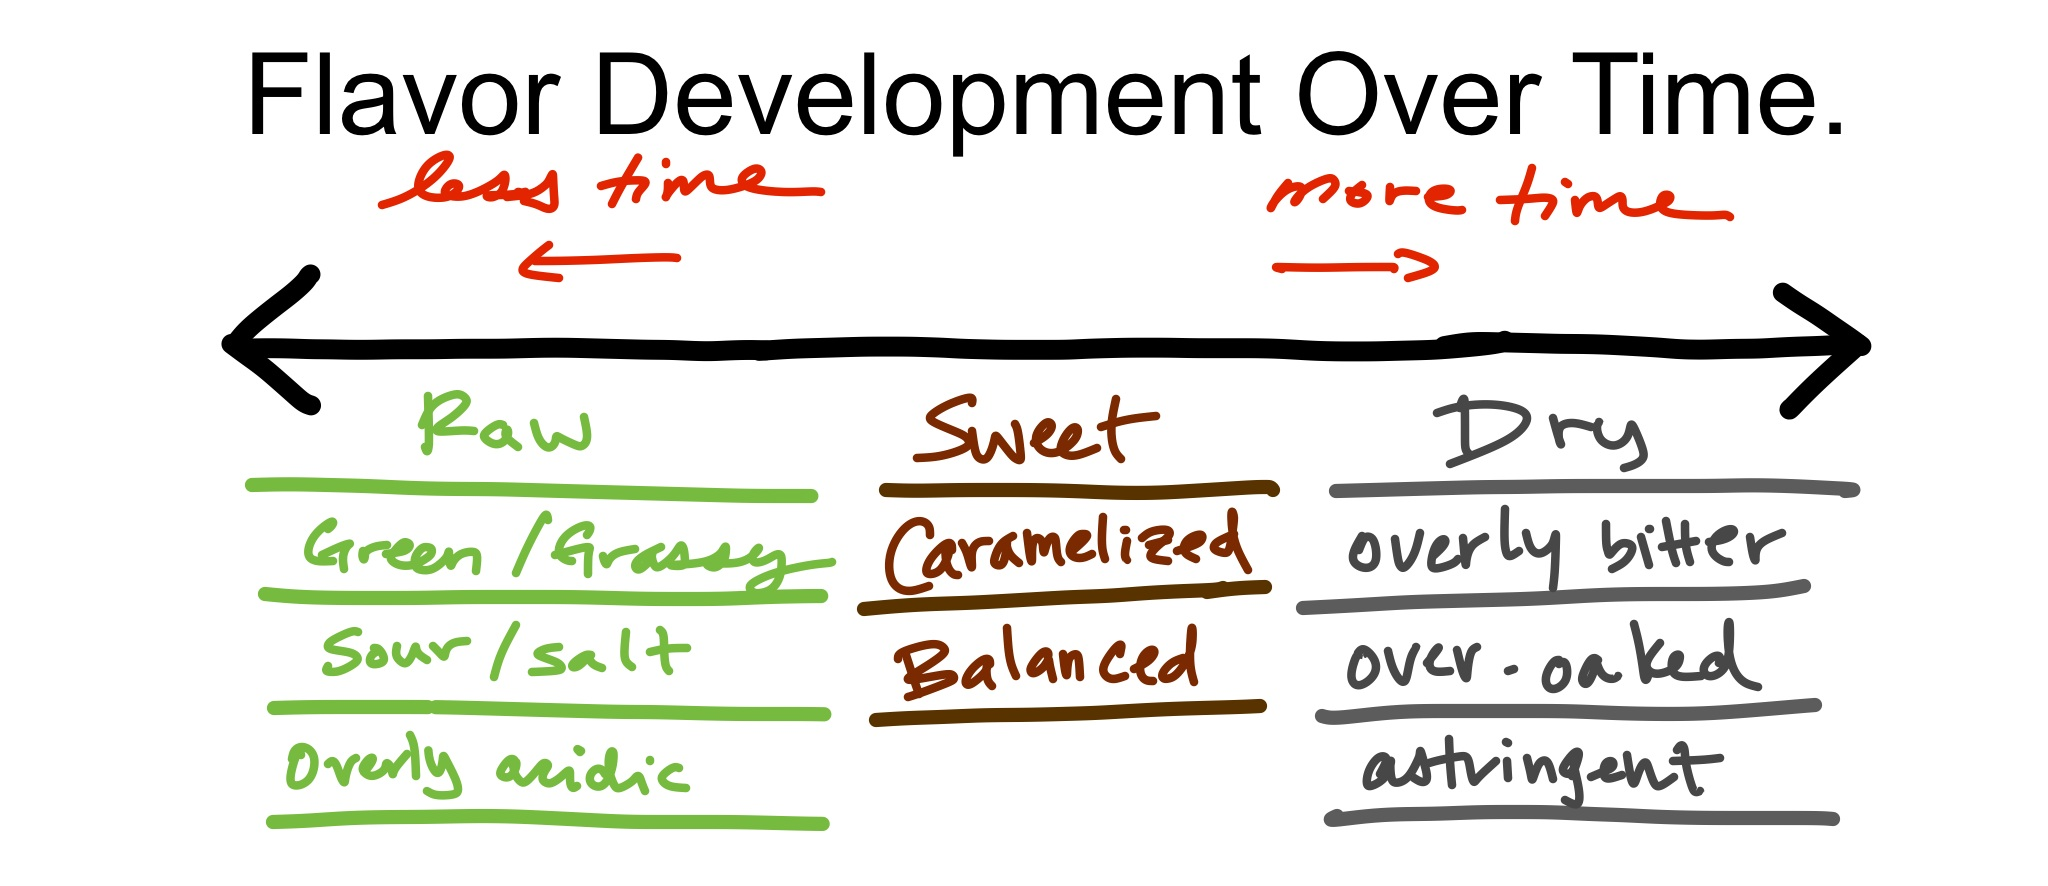 Flavor Development over Time